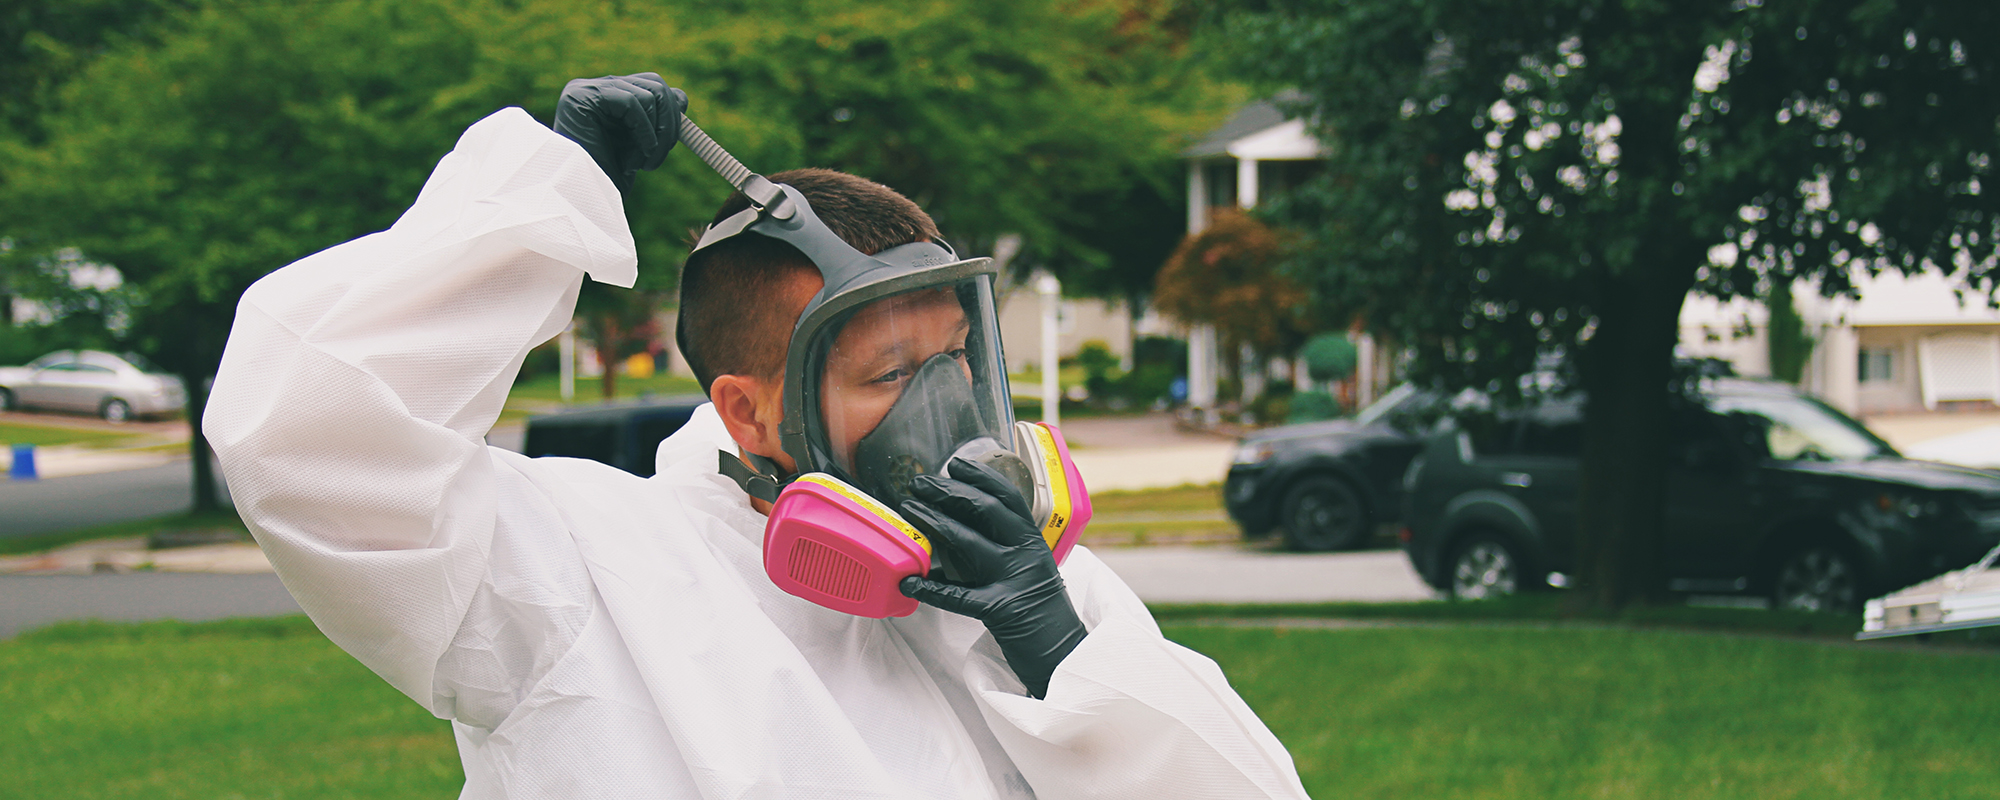 trained technicians for mold removal Medford NJ